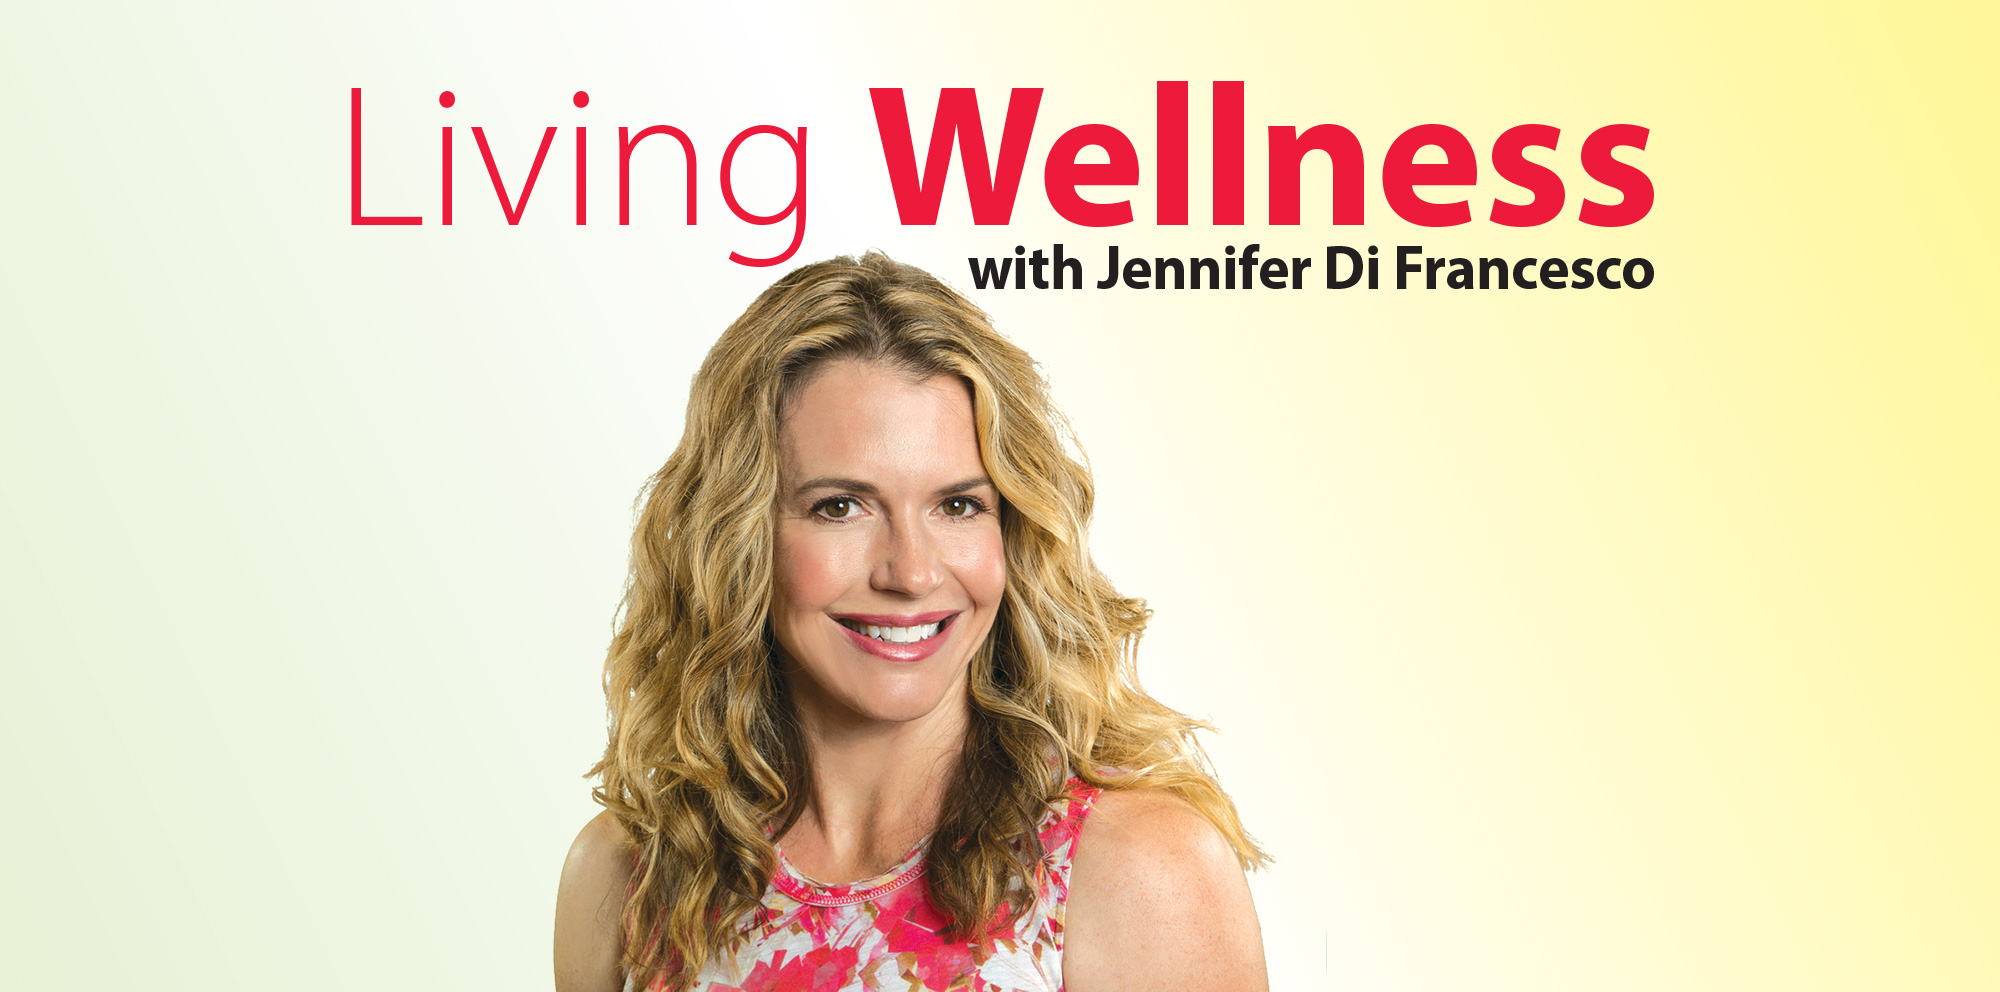 Living Wellness with Jennifer